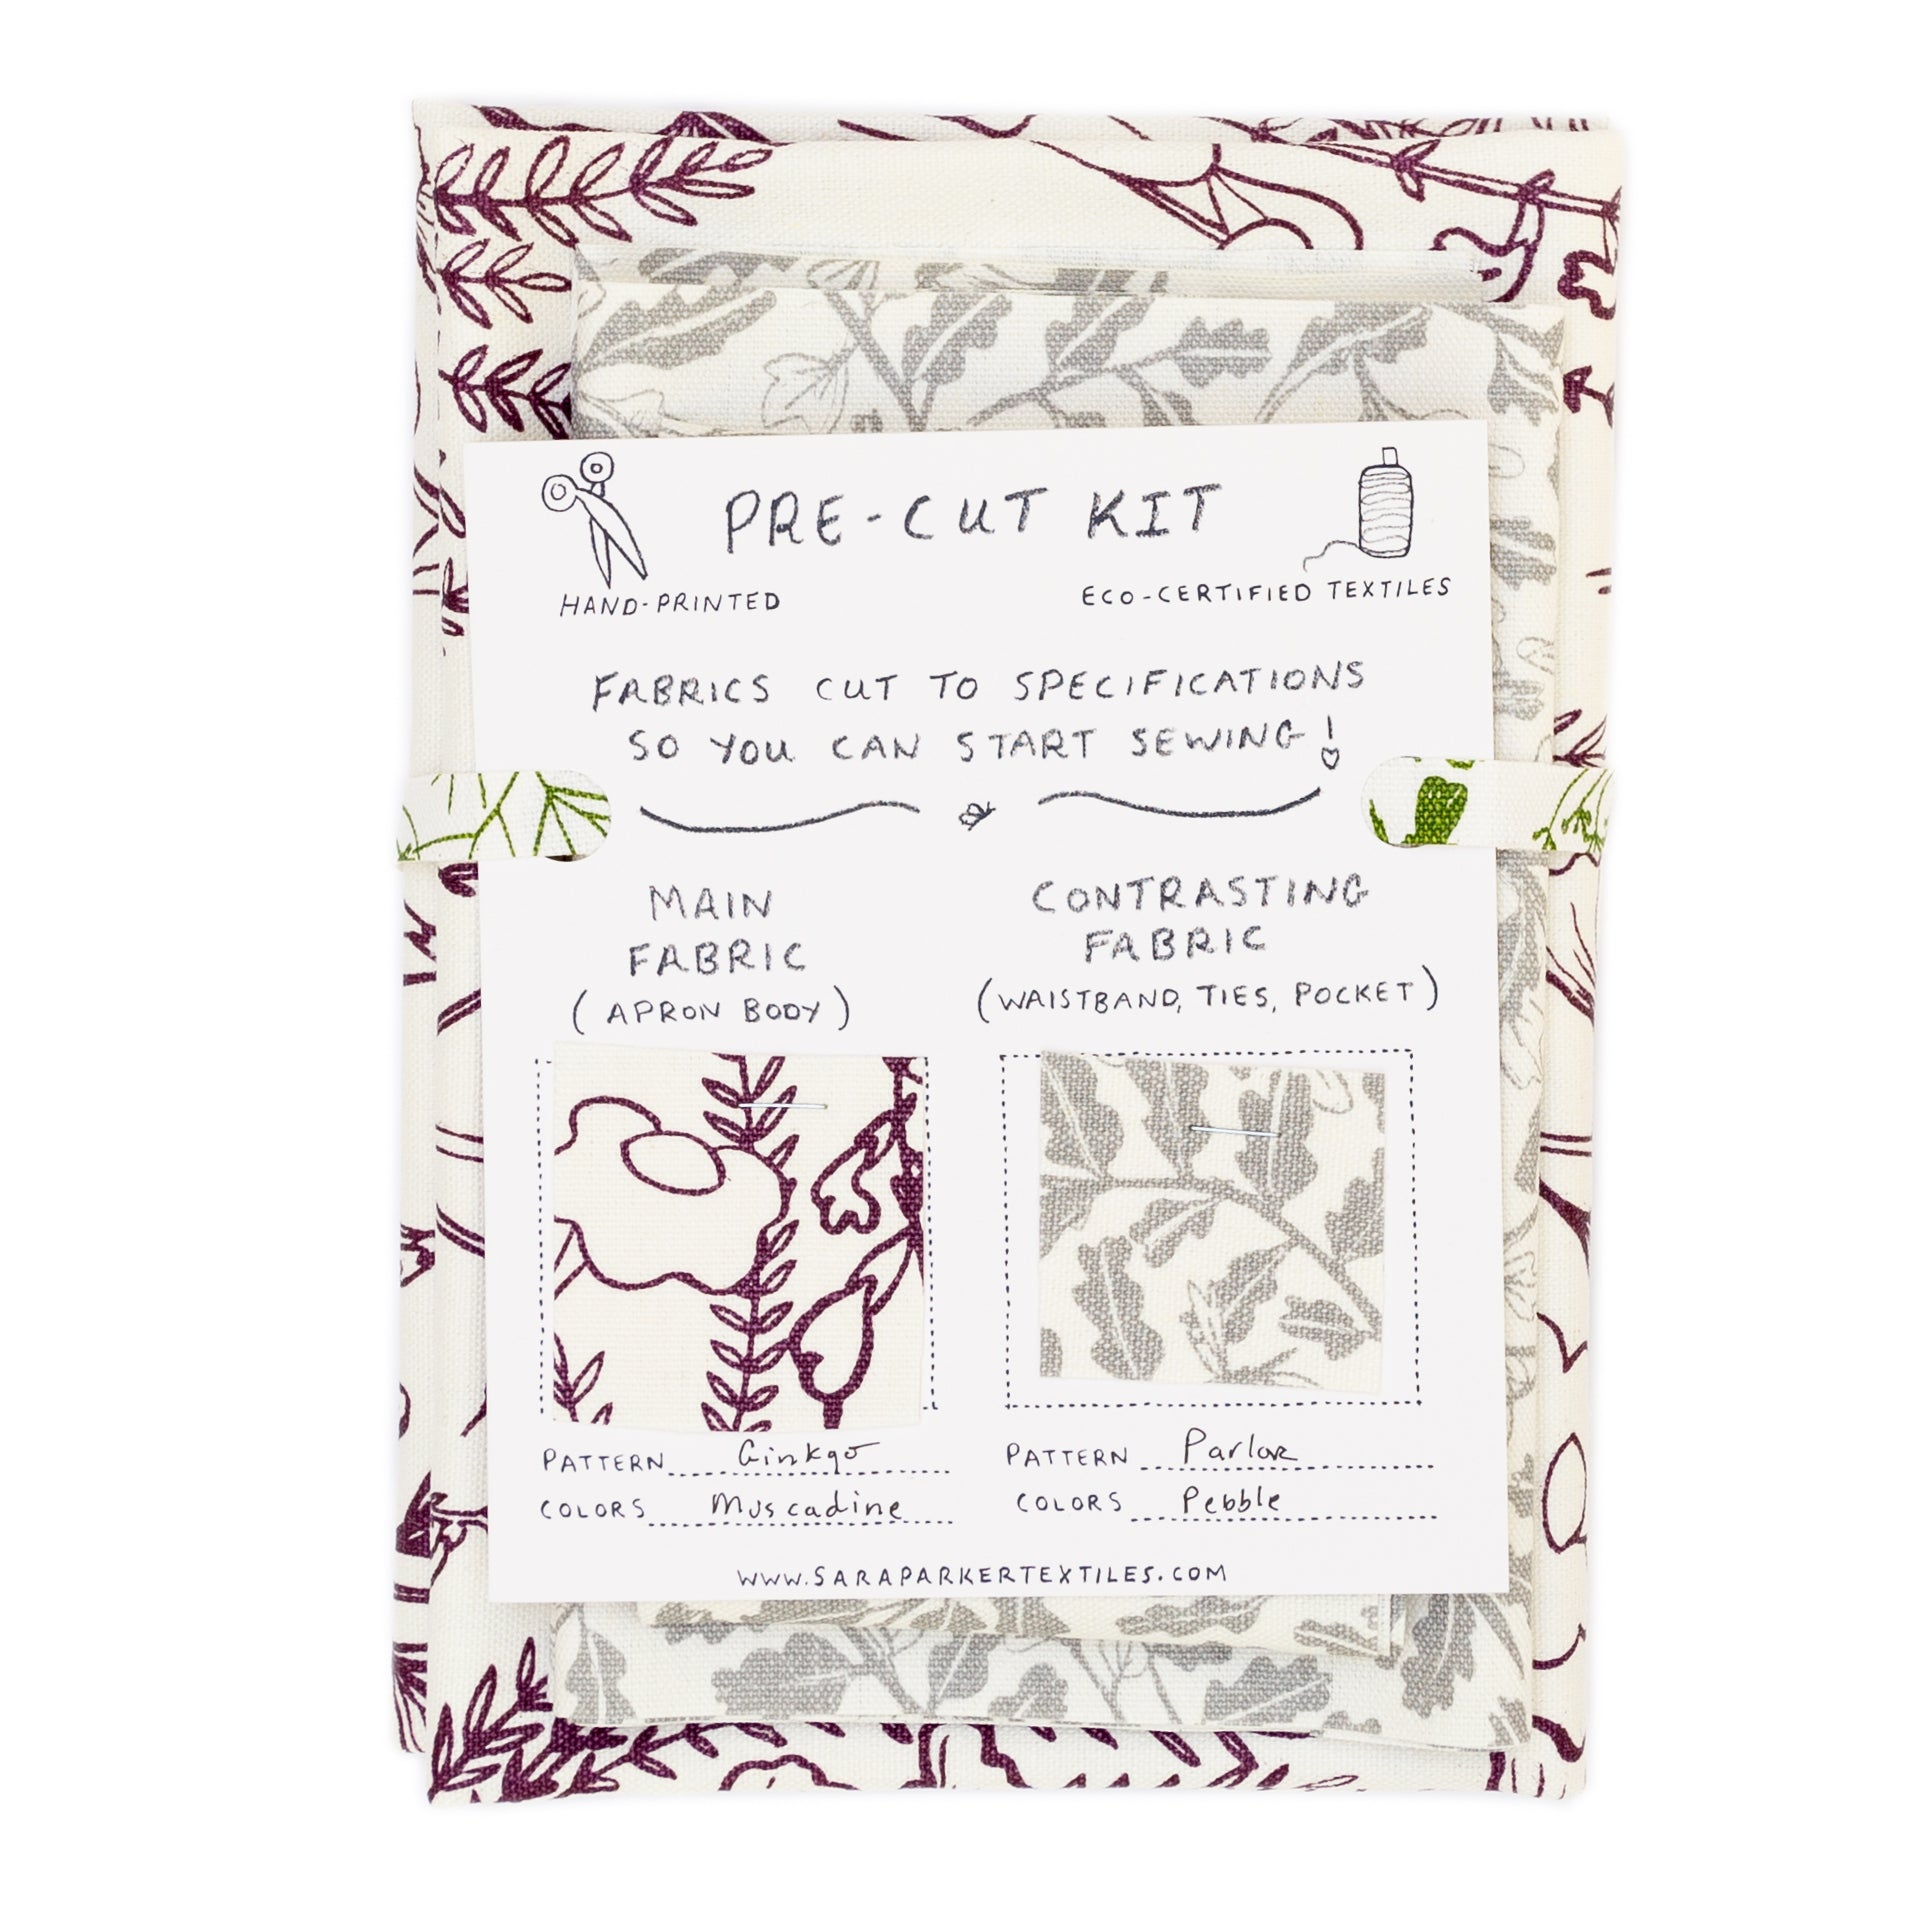 Cheryl Half Apron kit with pre-cut screen printed fabric